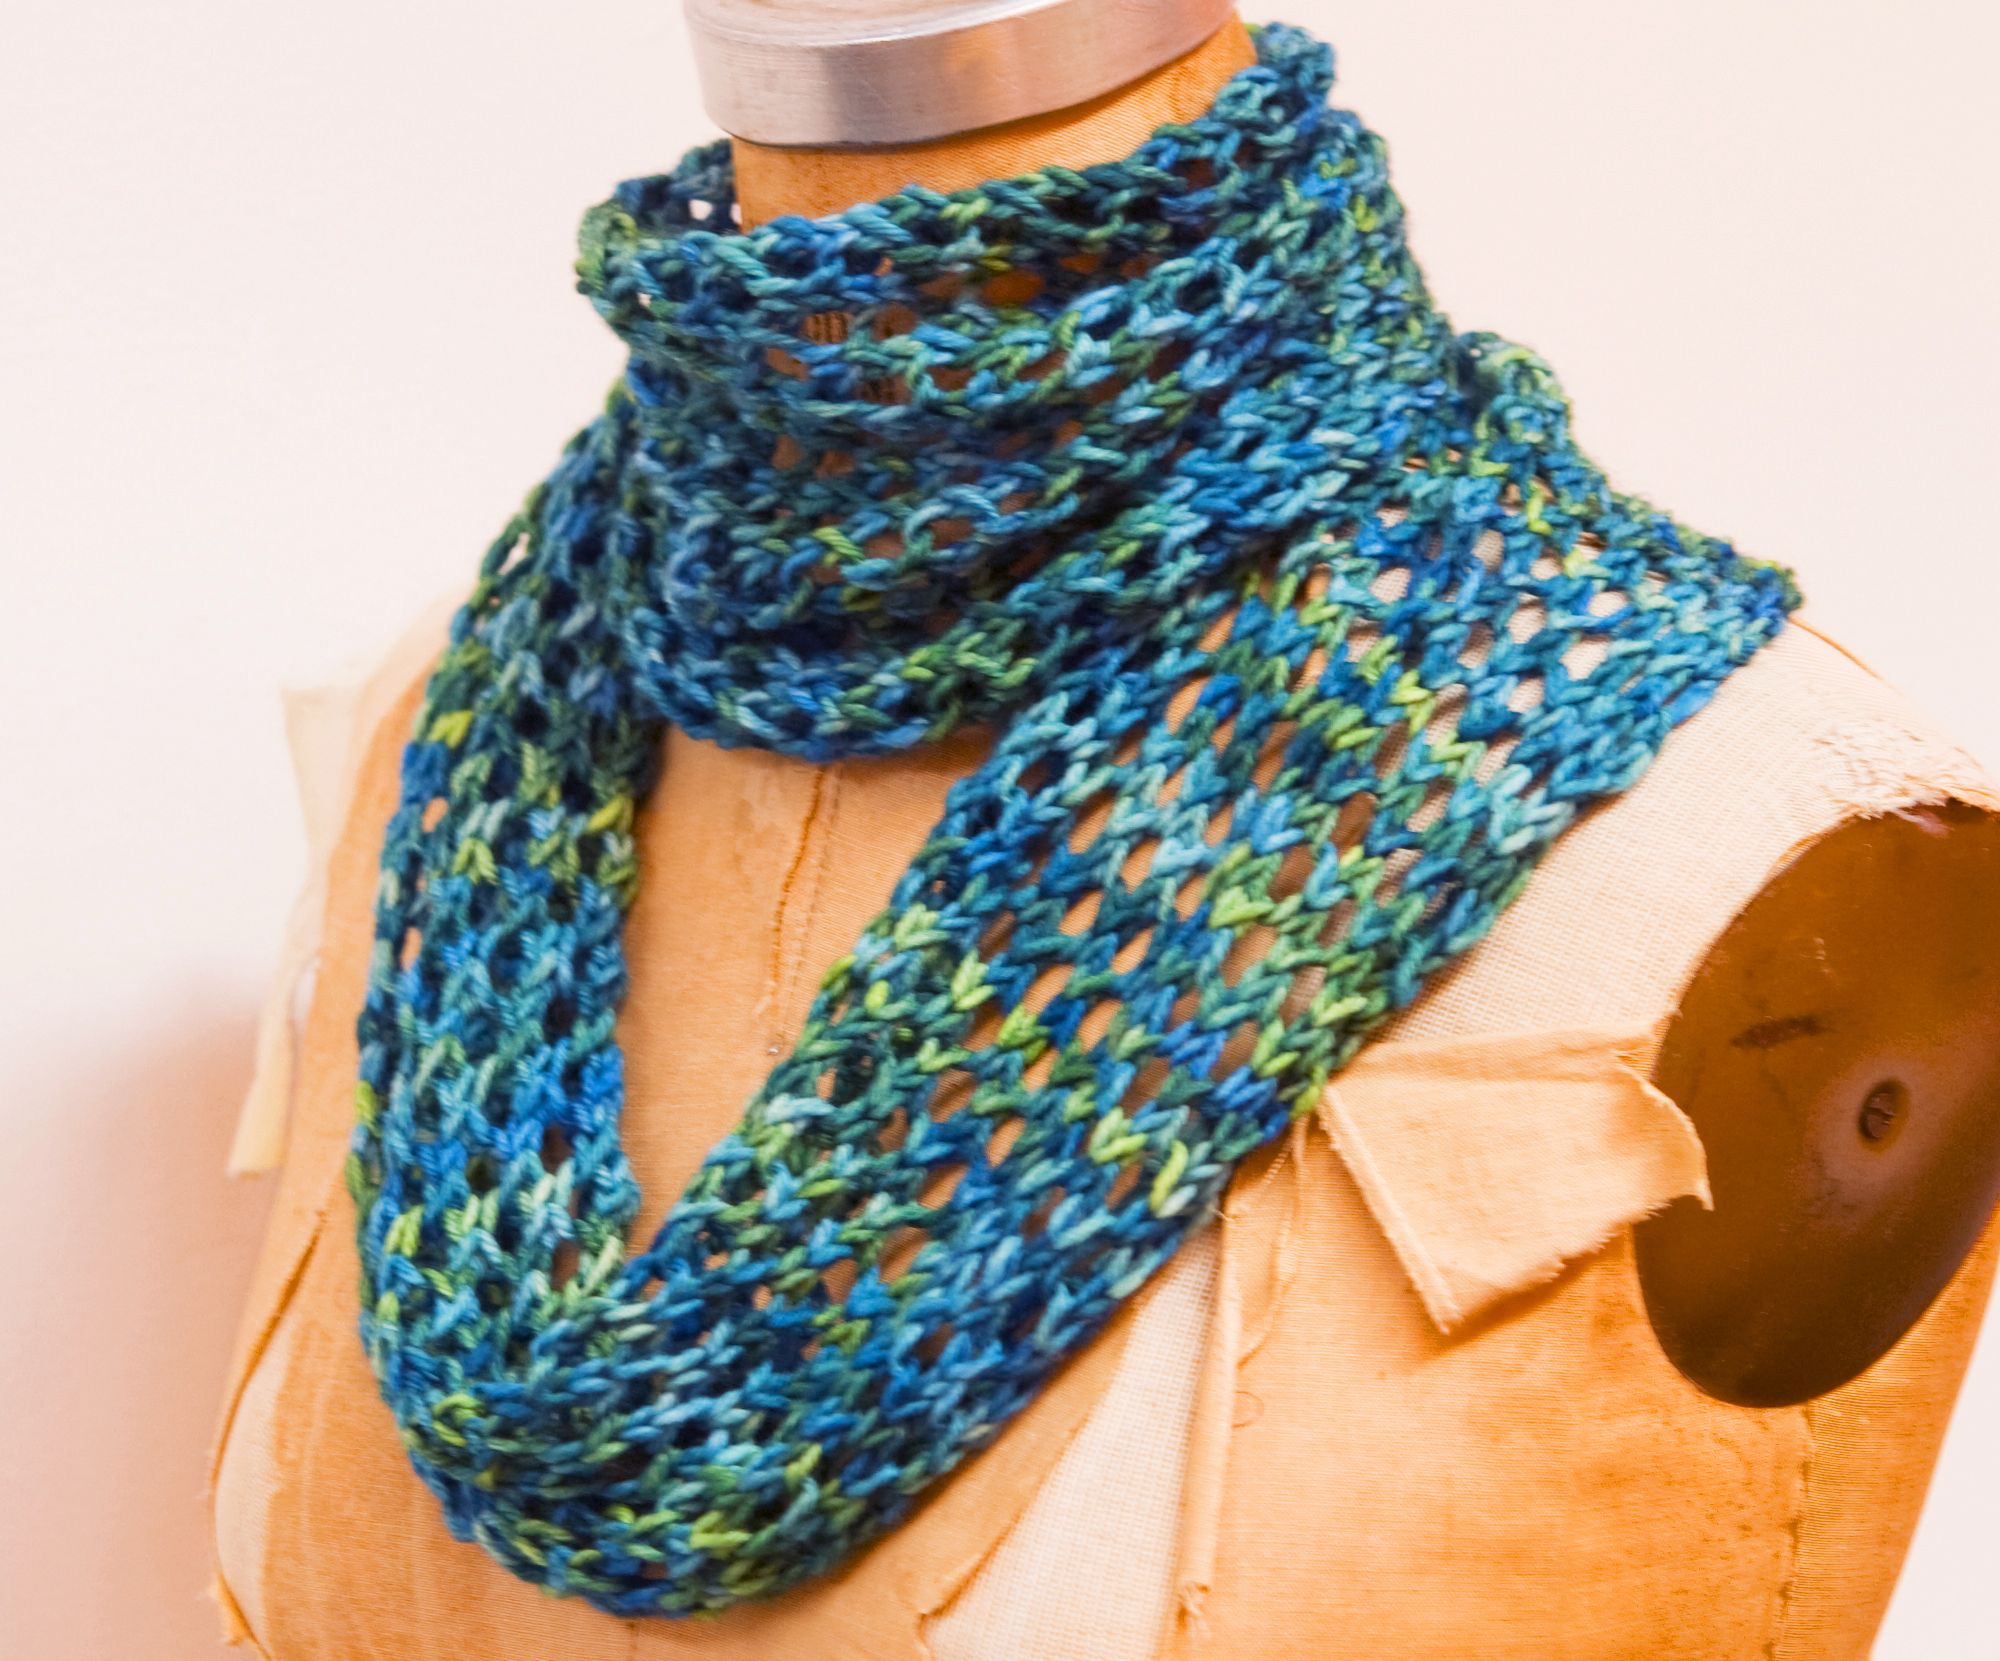 Knitting Patterns For Scarves On Pinterest : Easy Trellis Lace Scarf (Knitting) Knitting and Crochet Pinterest Scarv...